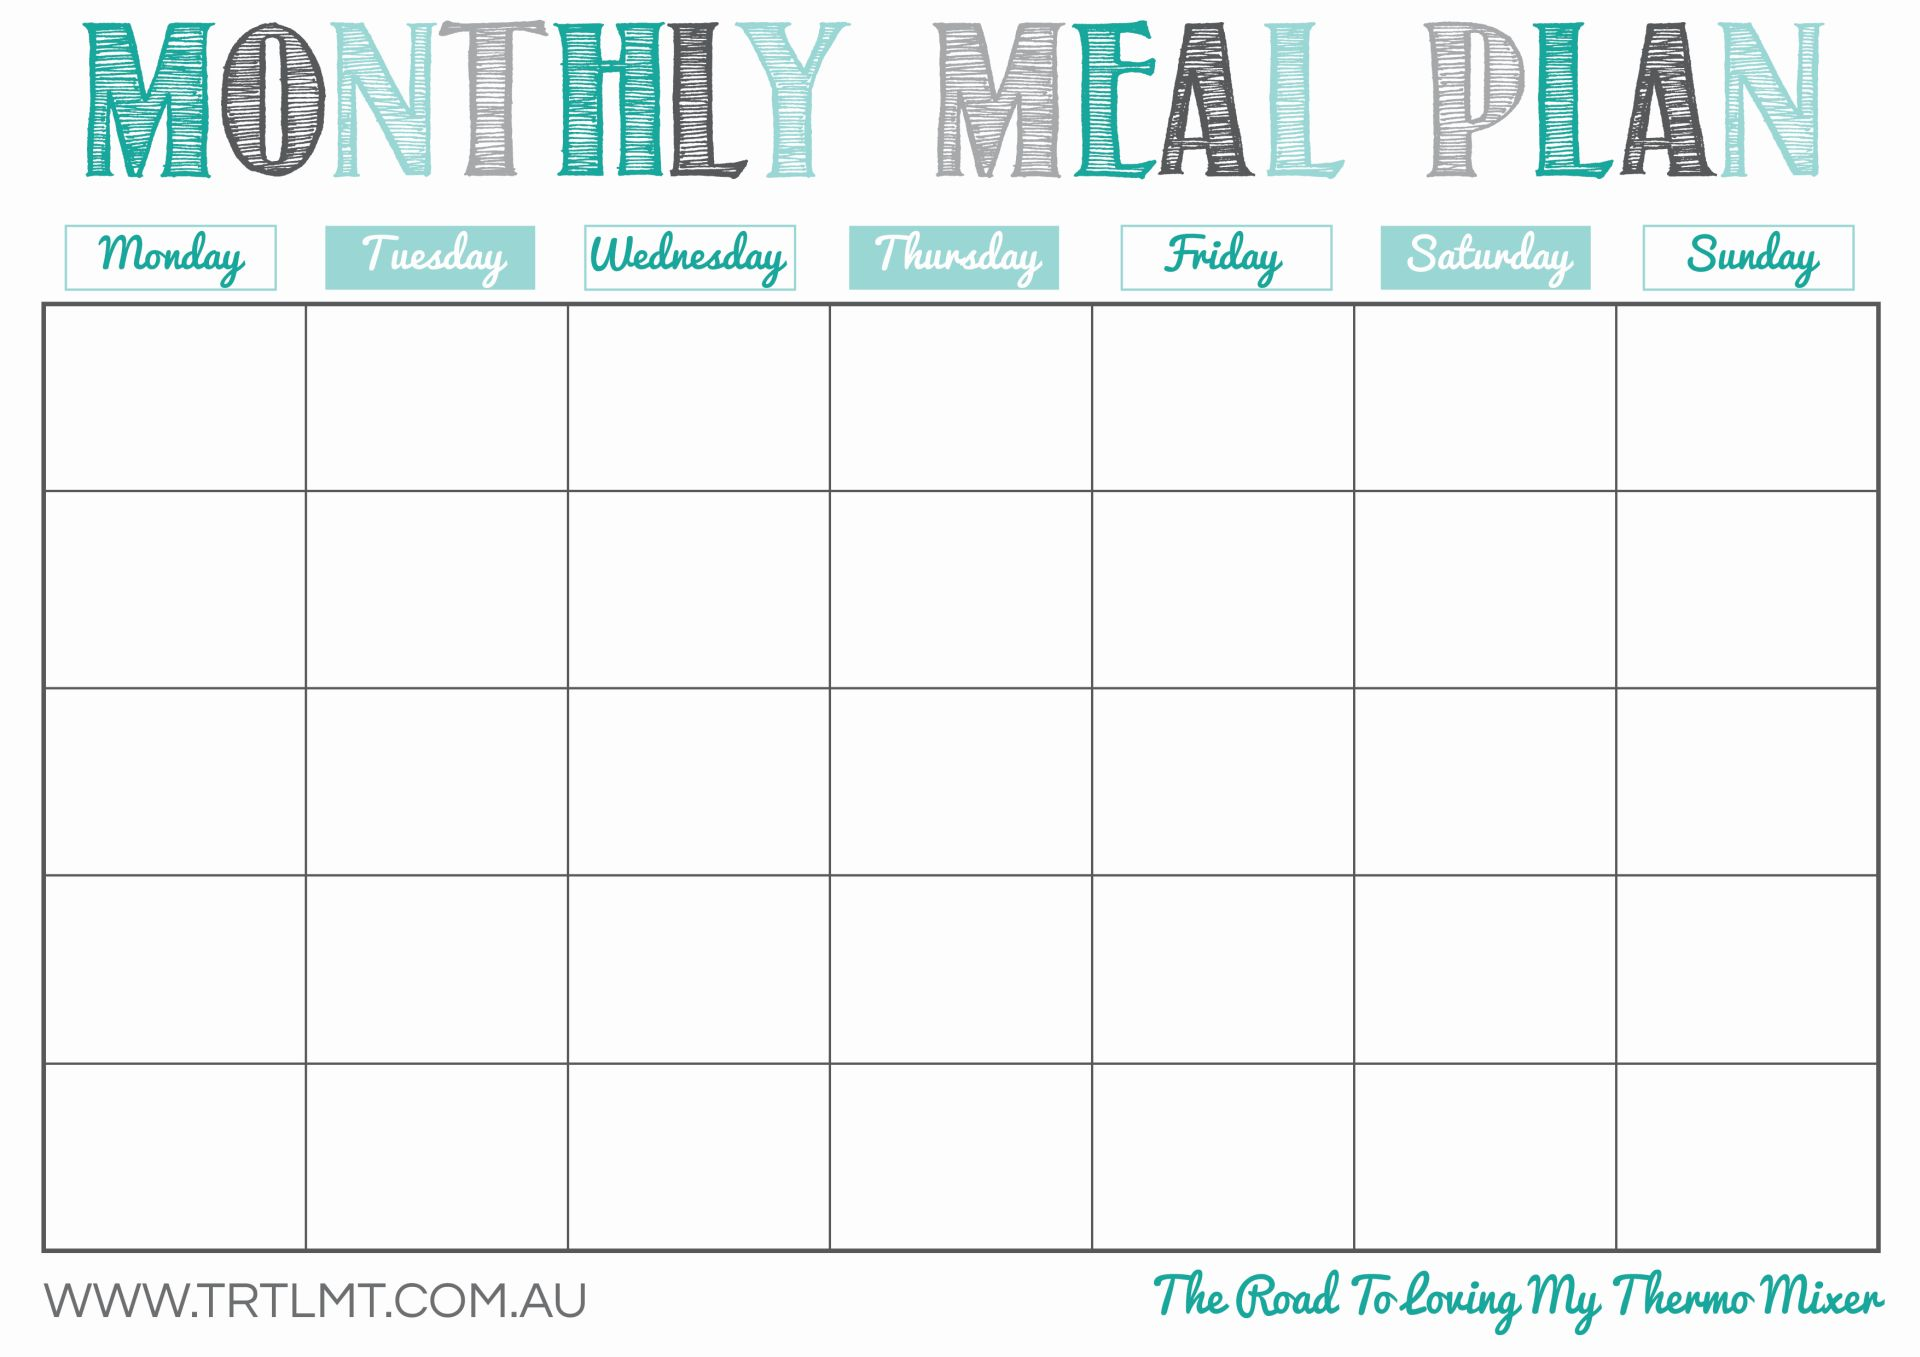 Printable monthly planner for meal management for diet